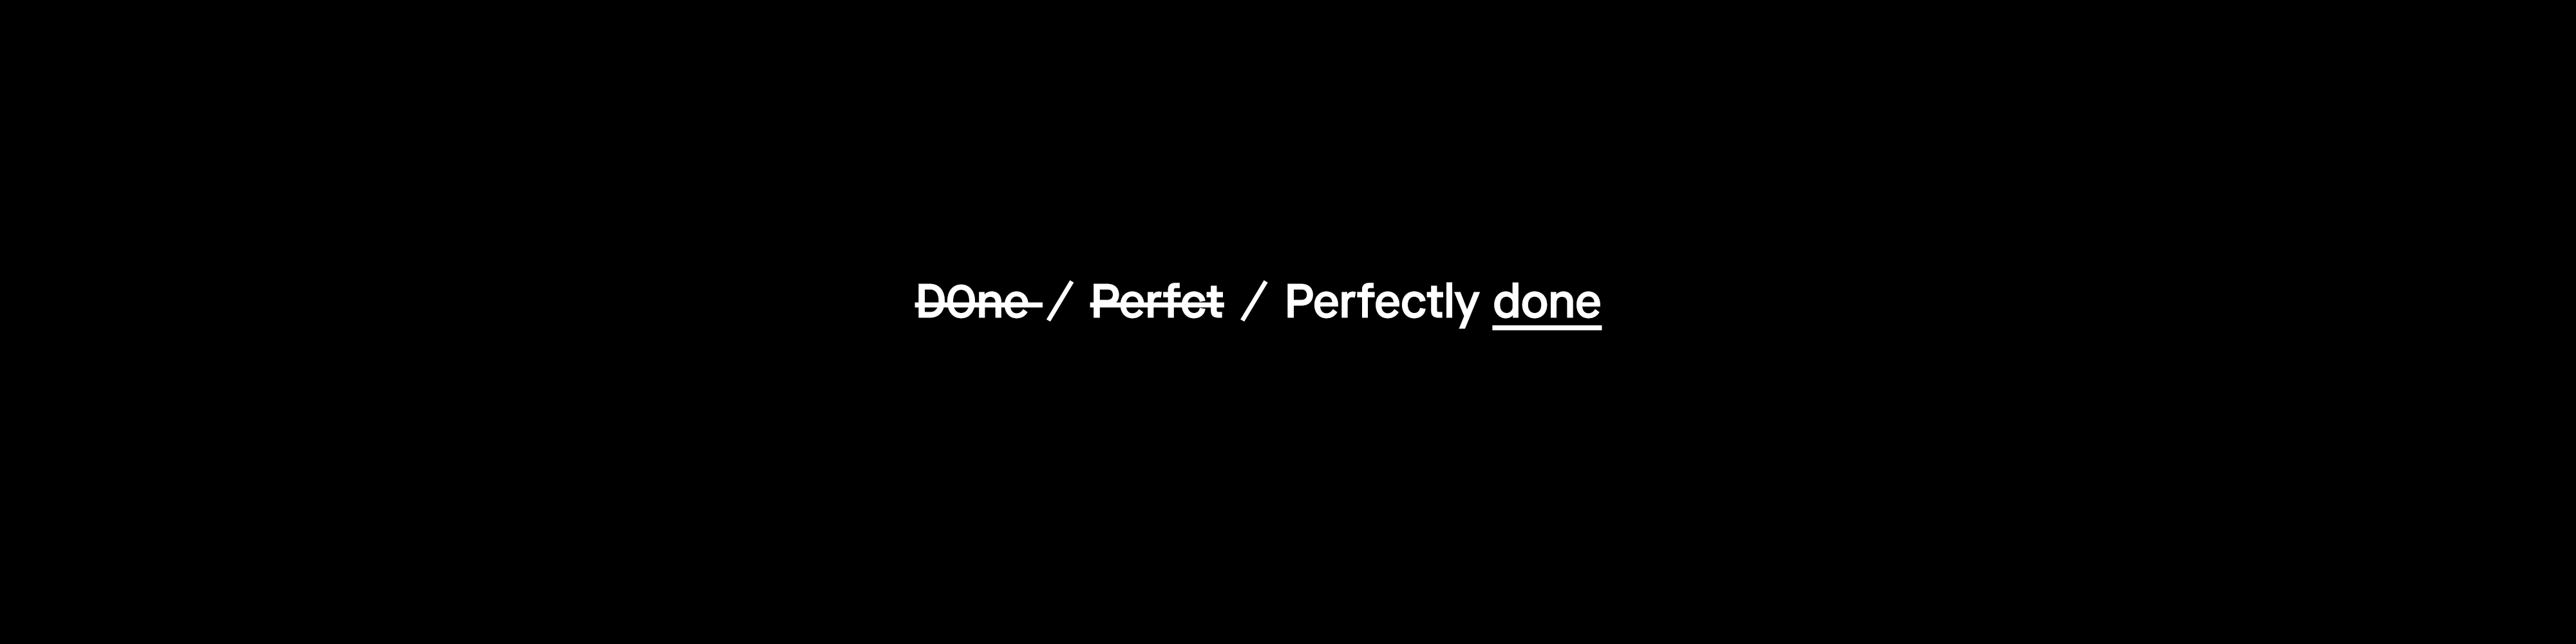 "A typographic overview, showing the words ""Done"" and ""Perfect"" with strikethrough and the words ""Perfectly done"" underlined."